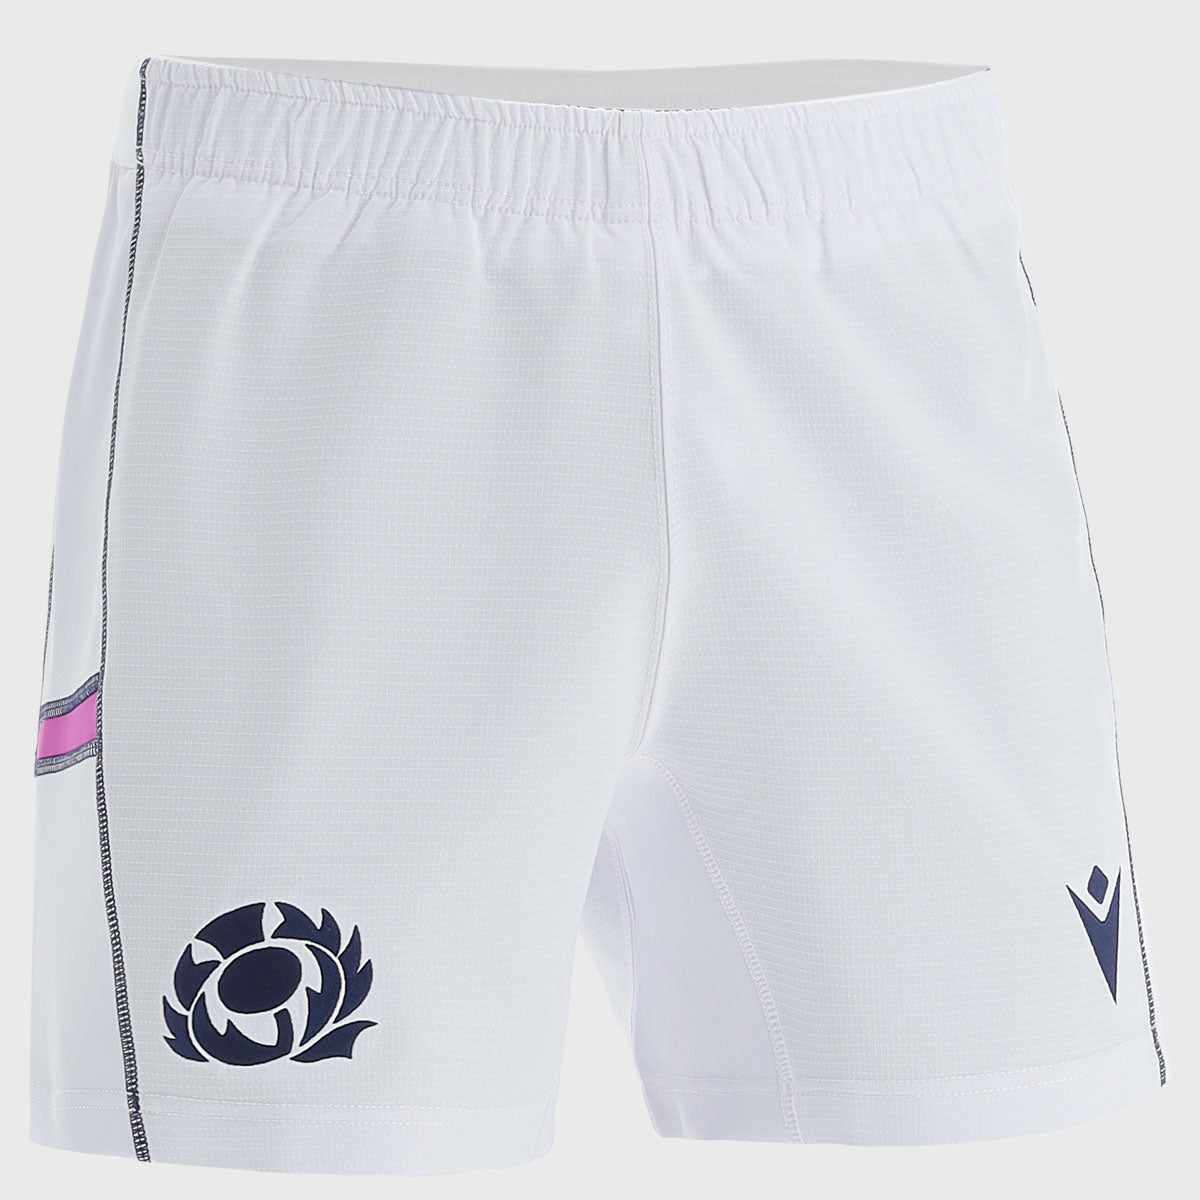 Scotland Home Senior Game Rugby Shorts 2020/21